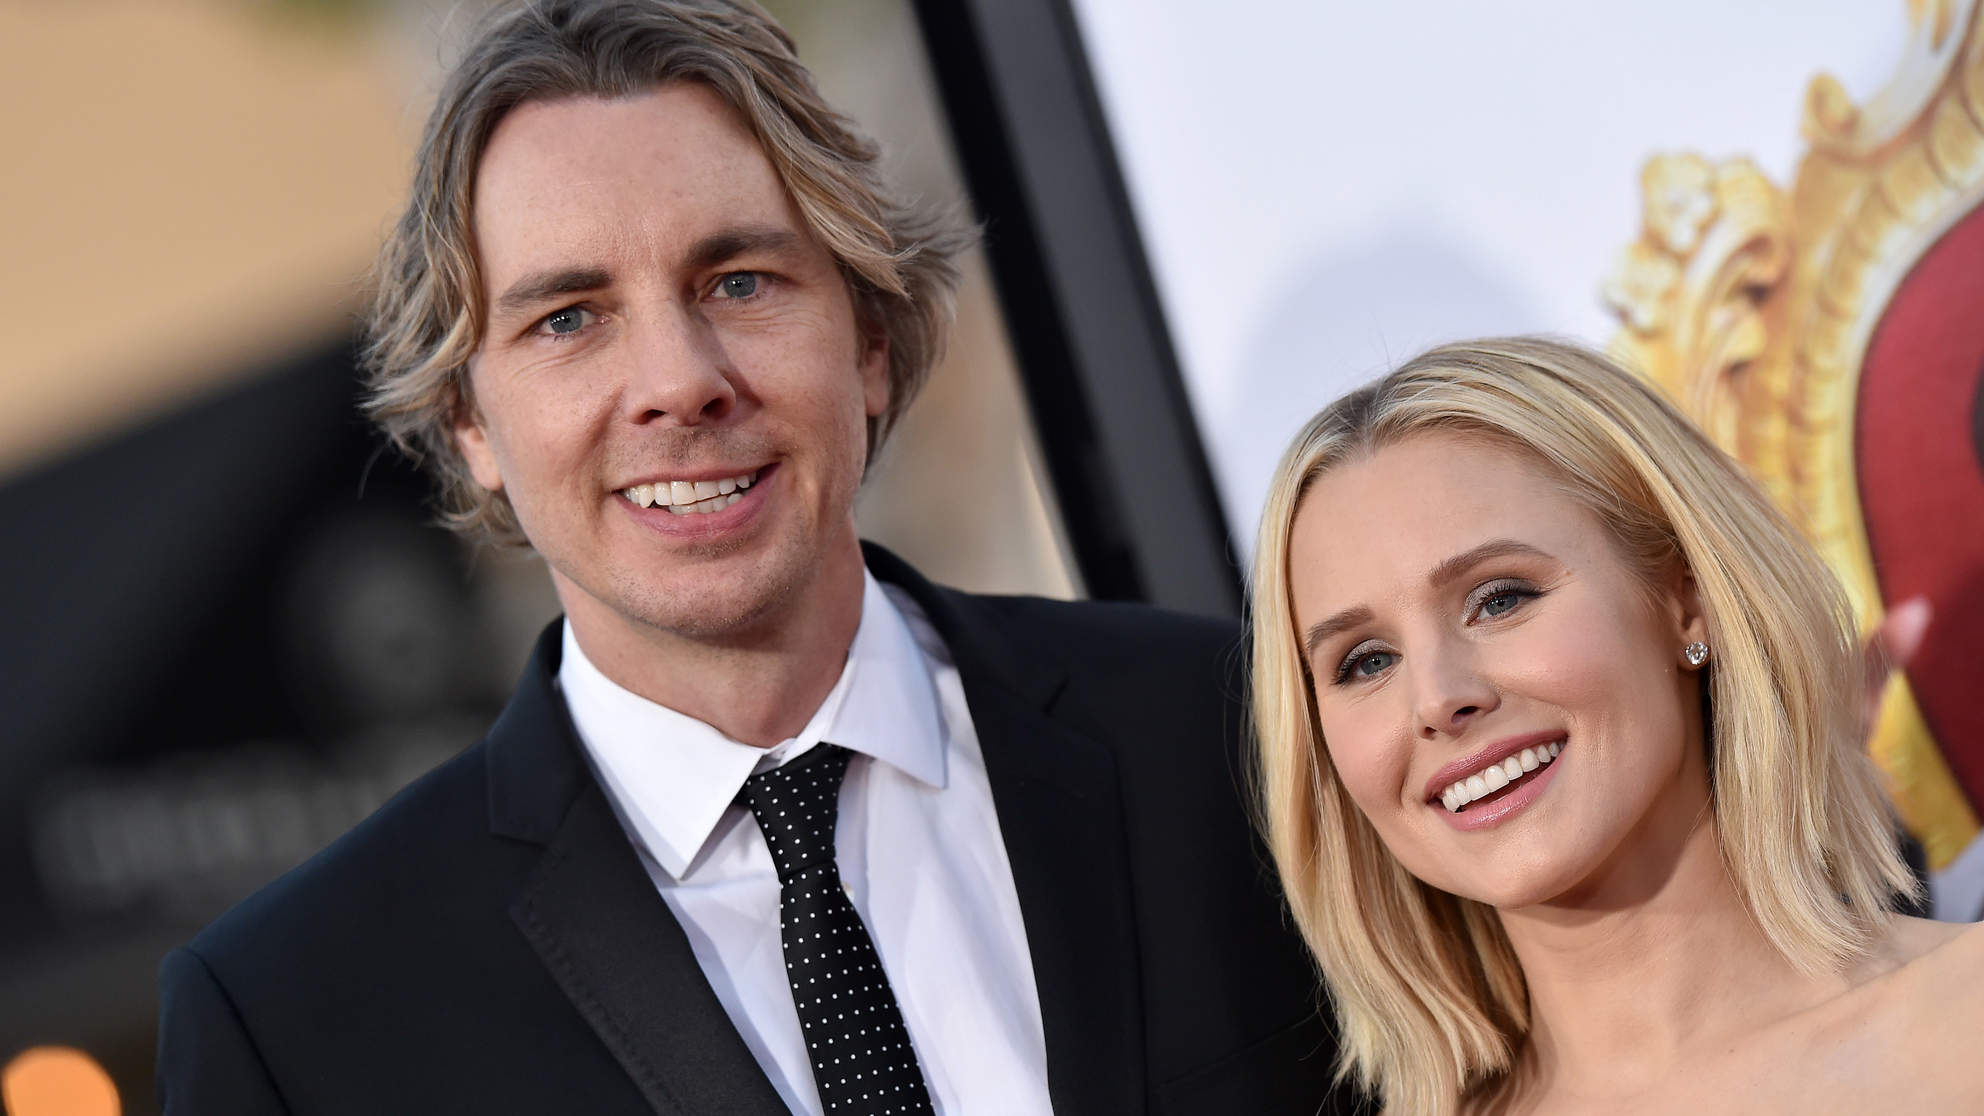 kristen bell dax shepard celebrity couple relationship marriage